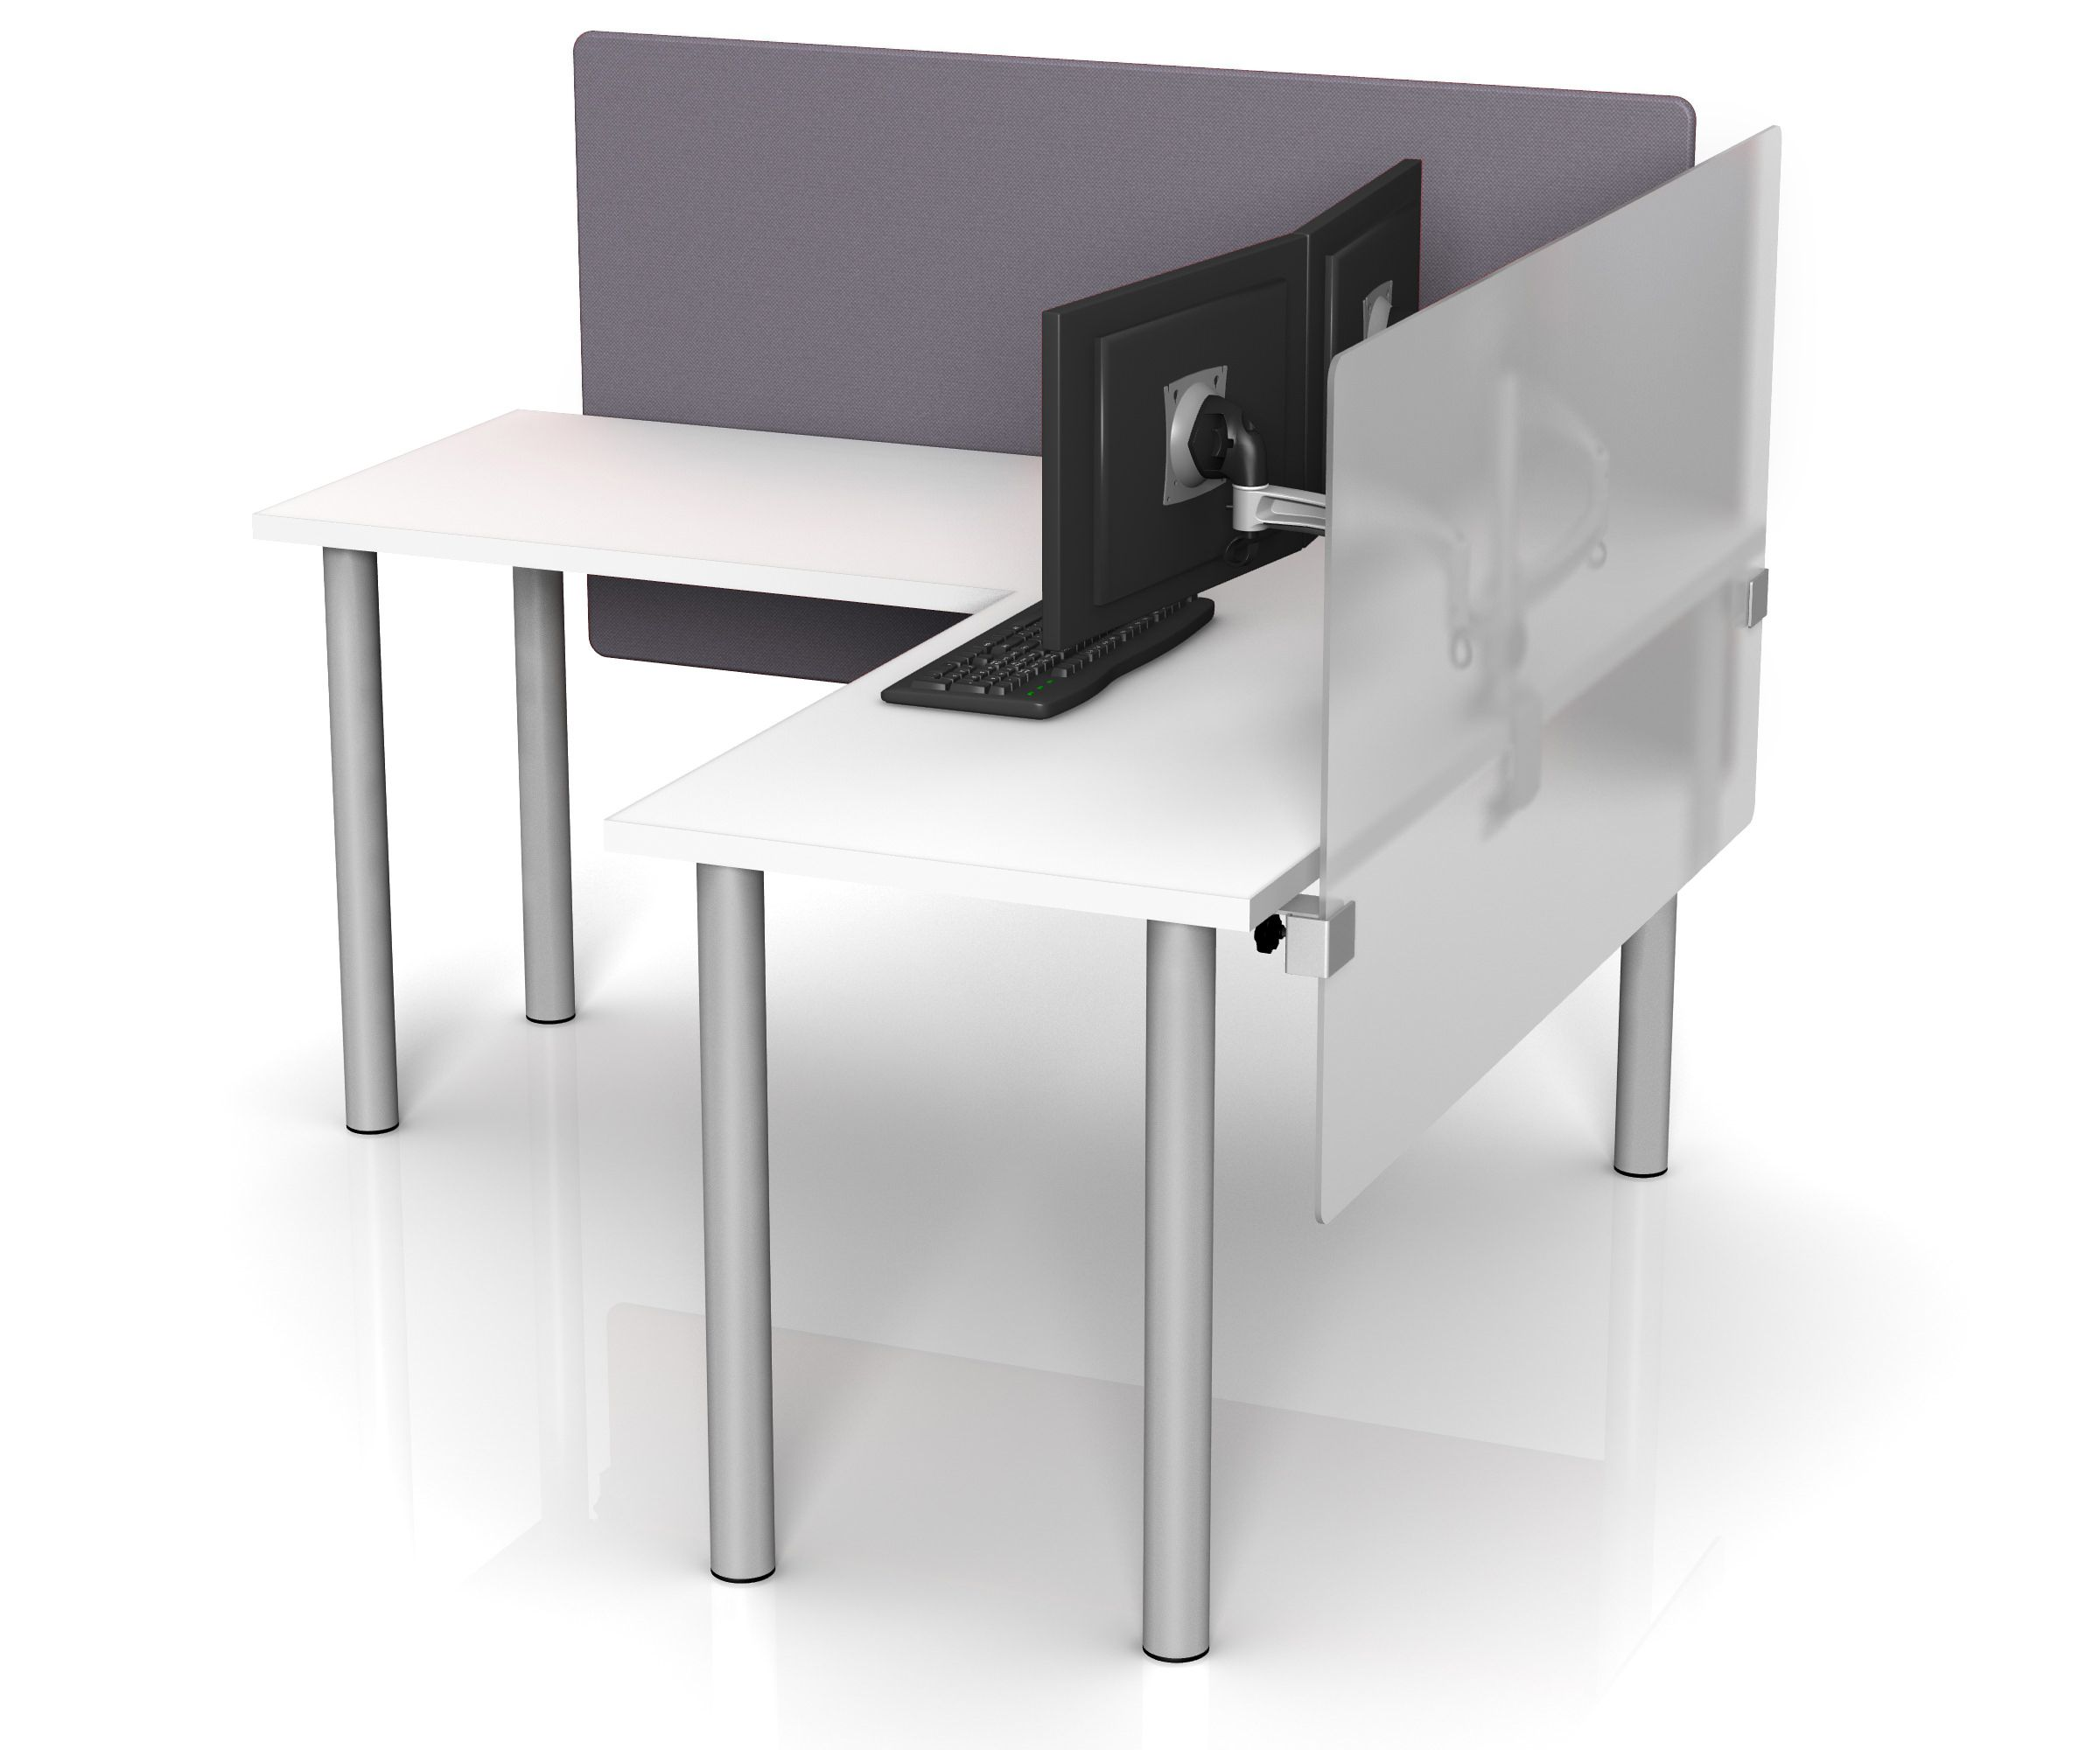 Great Height Adjustable Desk Dividers In Fabric And Frosted Acrylic By Merge Works